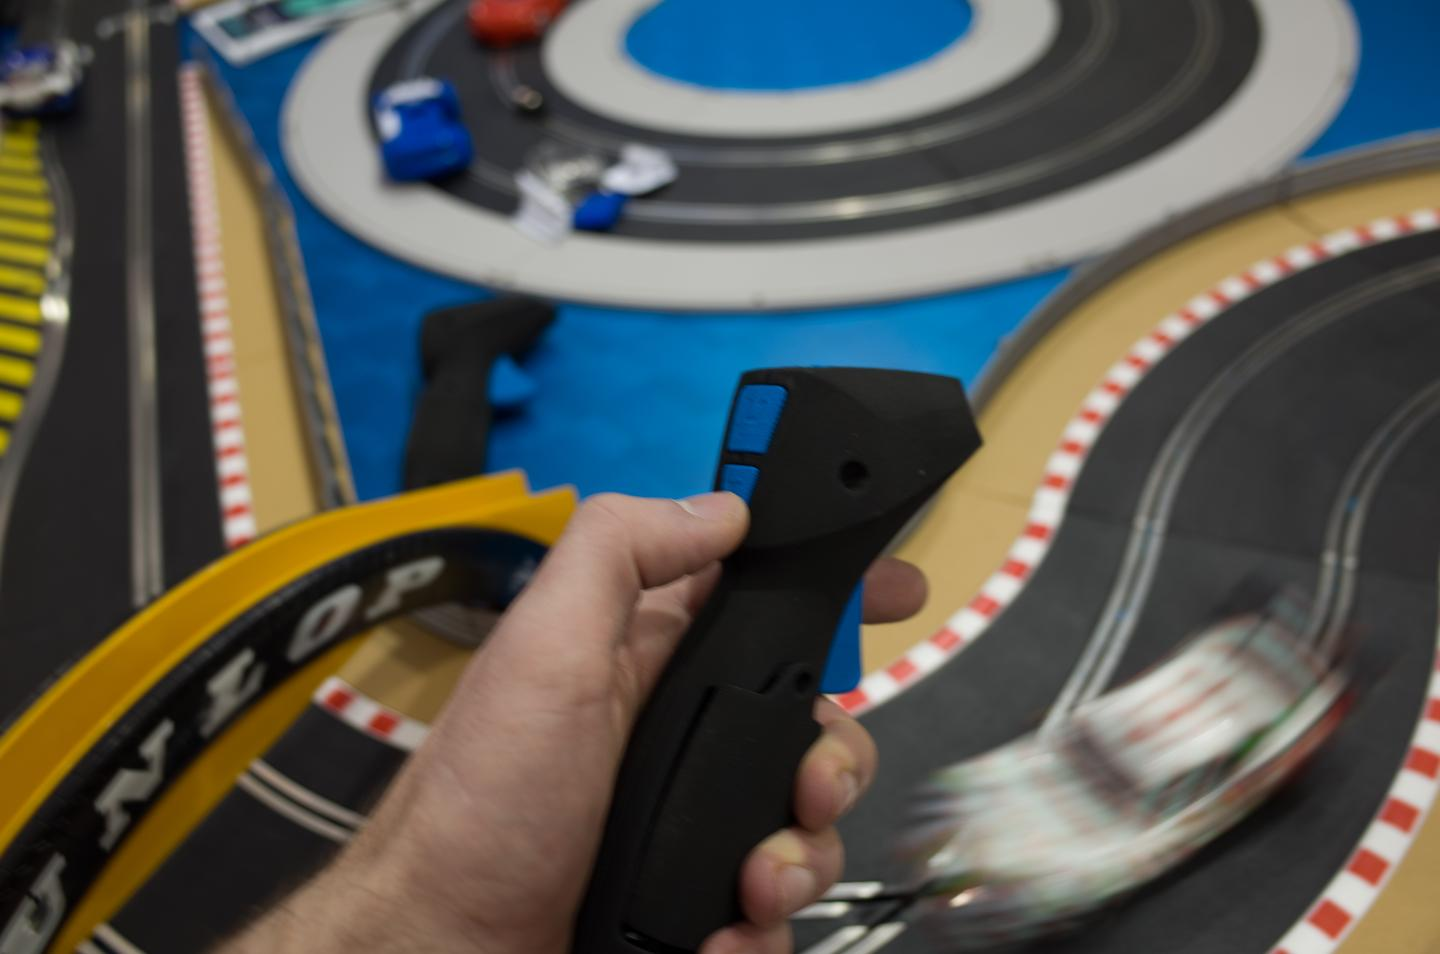 Scalextric RCS Air and Scalextric RCS Pro will come with new wireless hand throttles